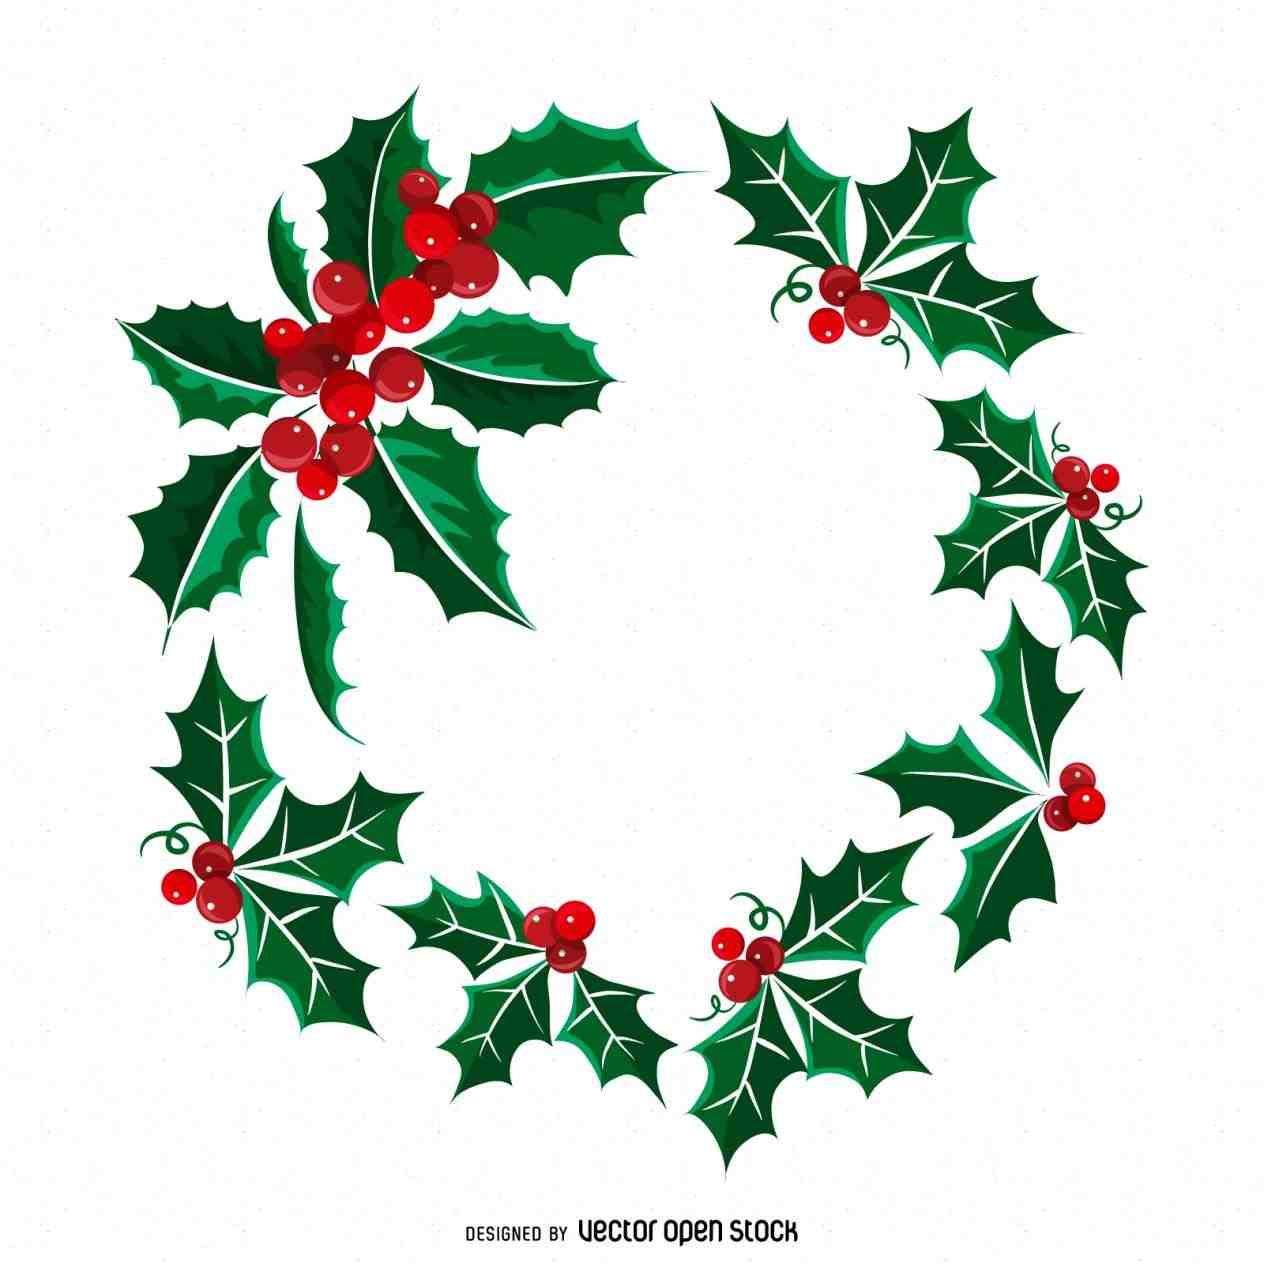 Christmas Wreath Silhouette.Christmas Wreath Clipart Free Download Best Christmas